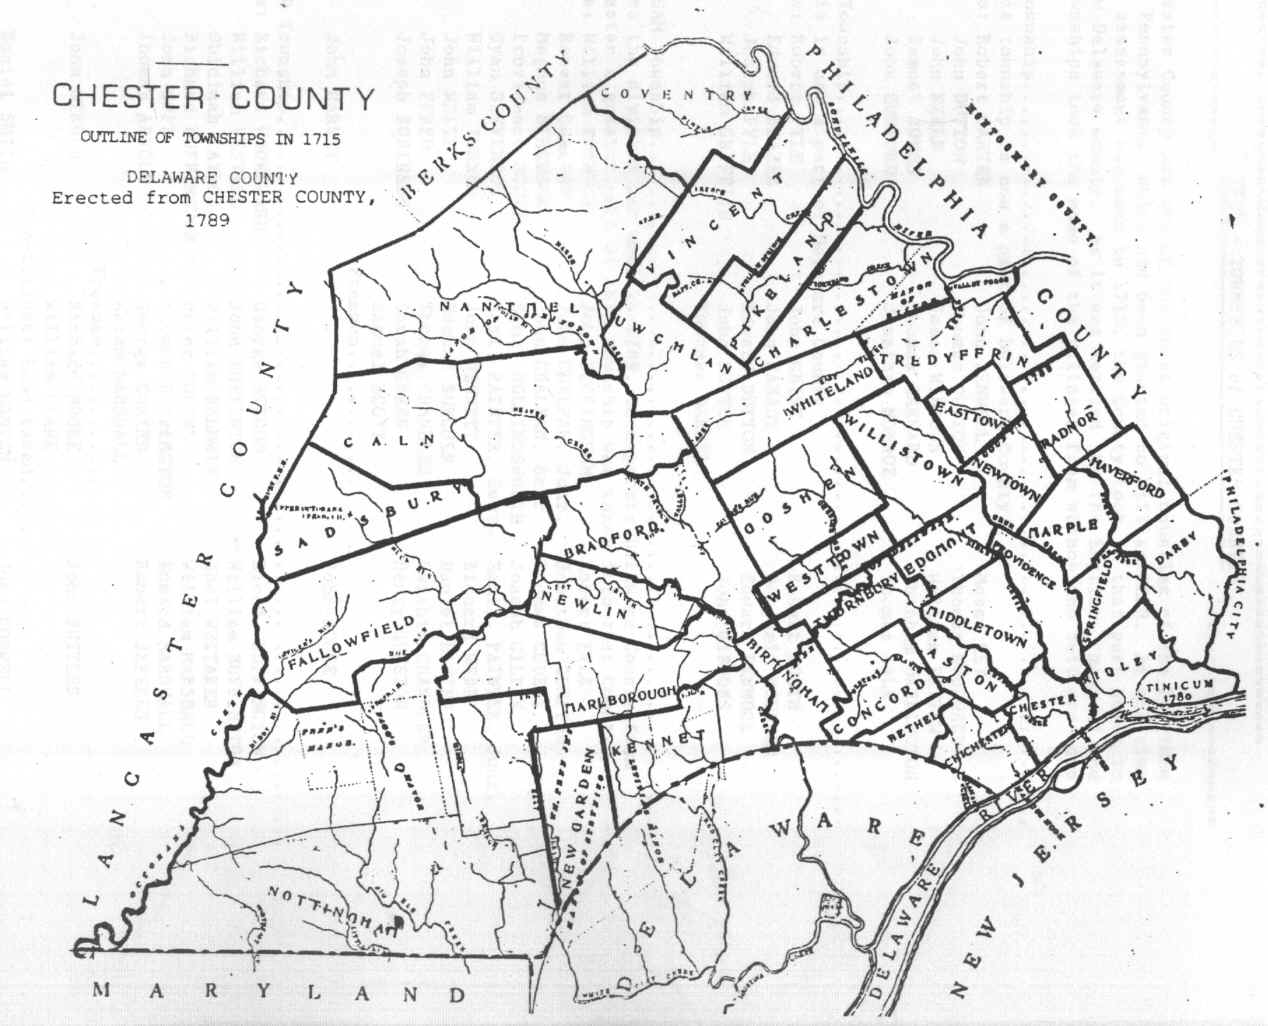 Chester County Pennsylvania Maps on